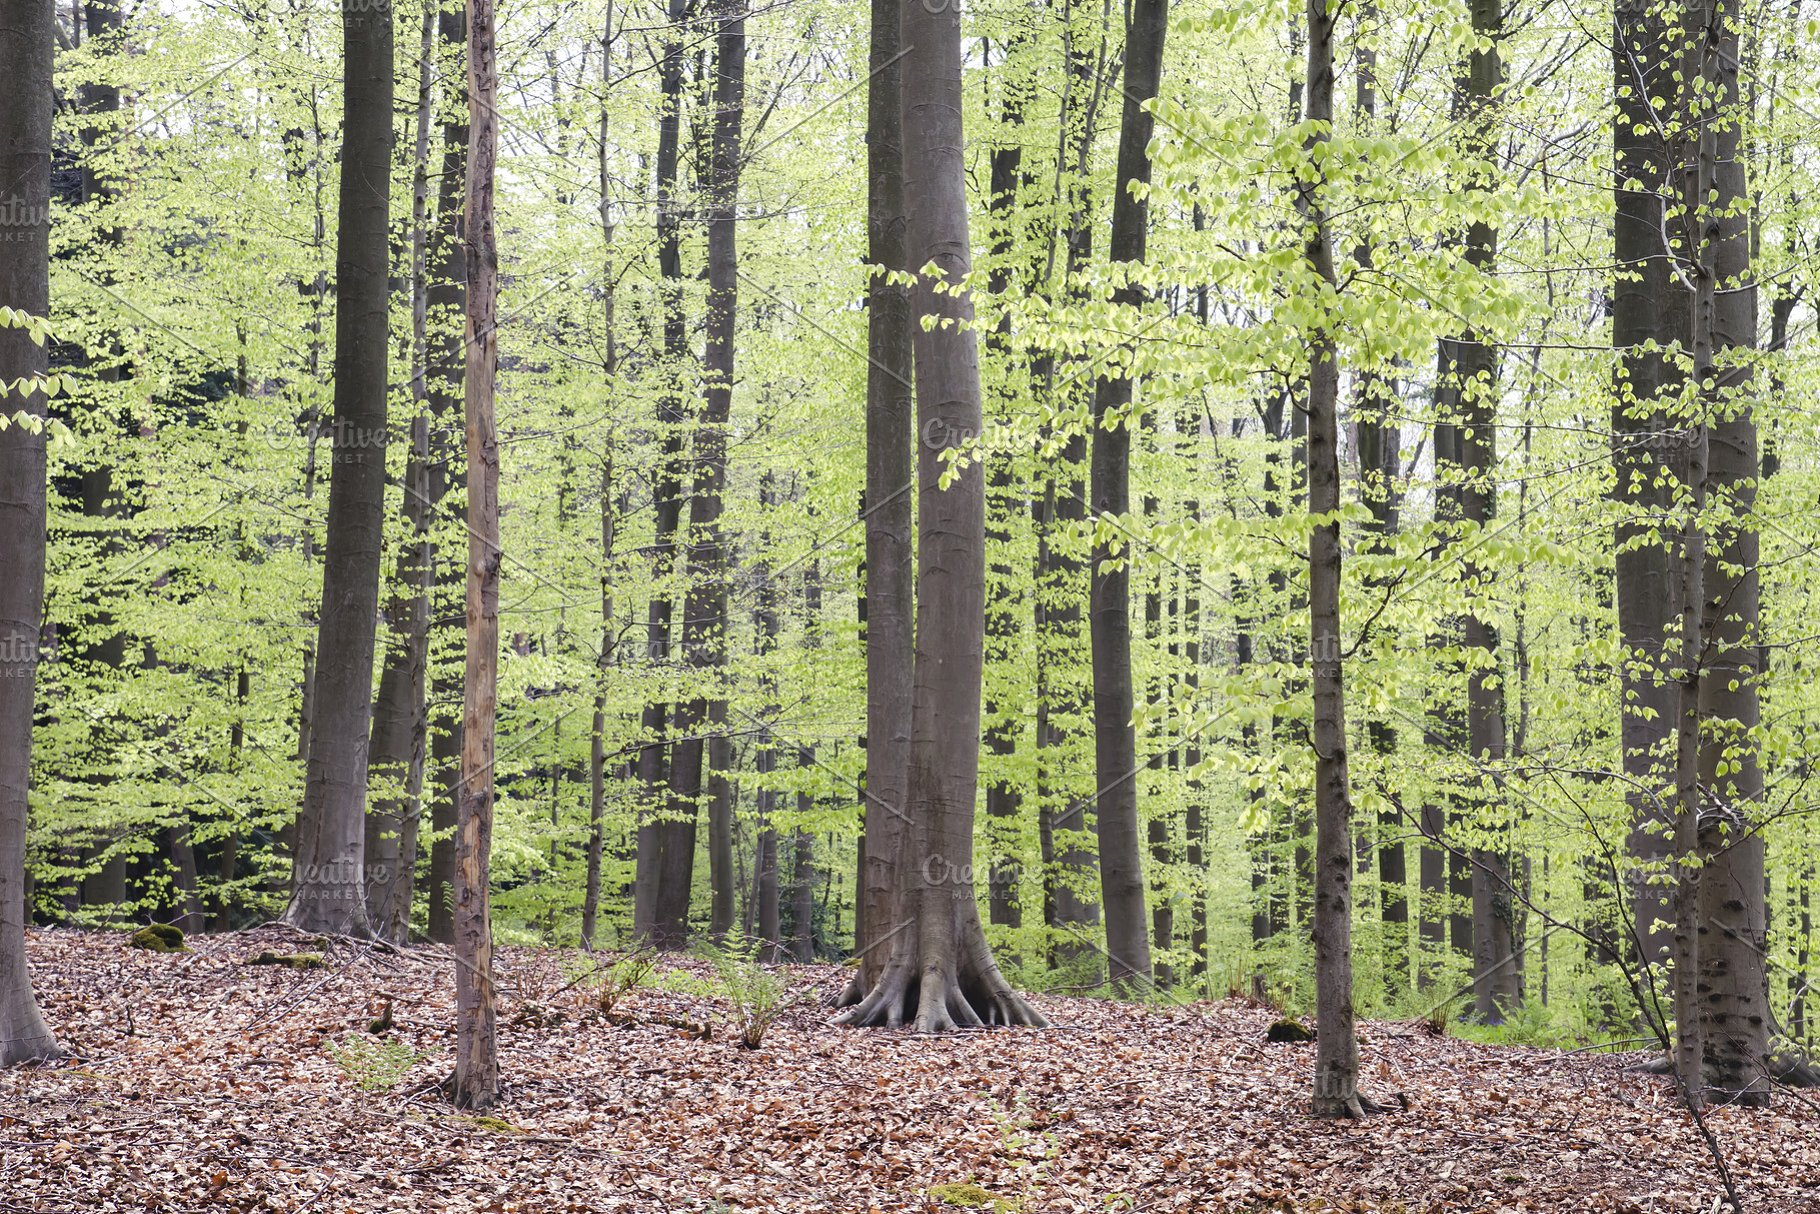 Green Beech Trees Woodland In Spring High Quality Nature Stock